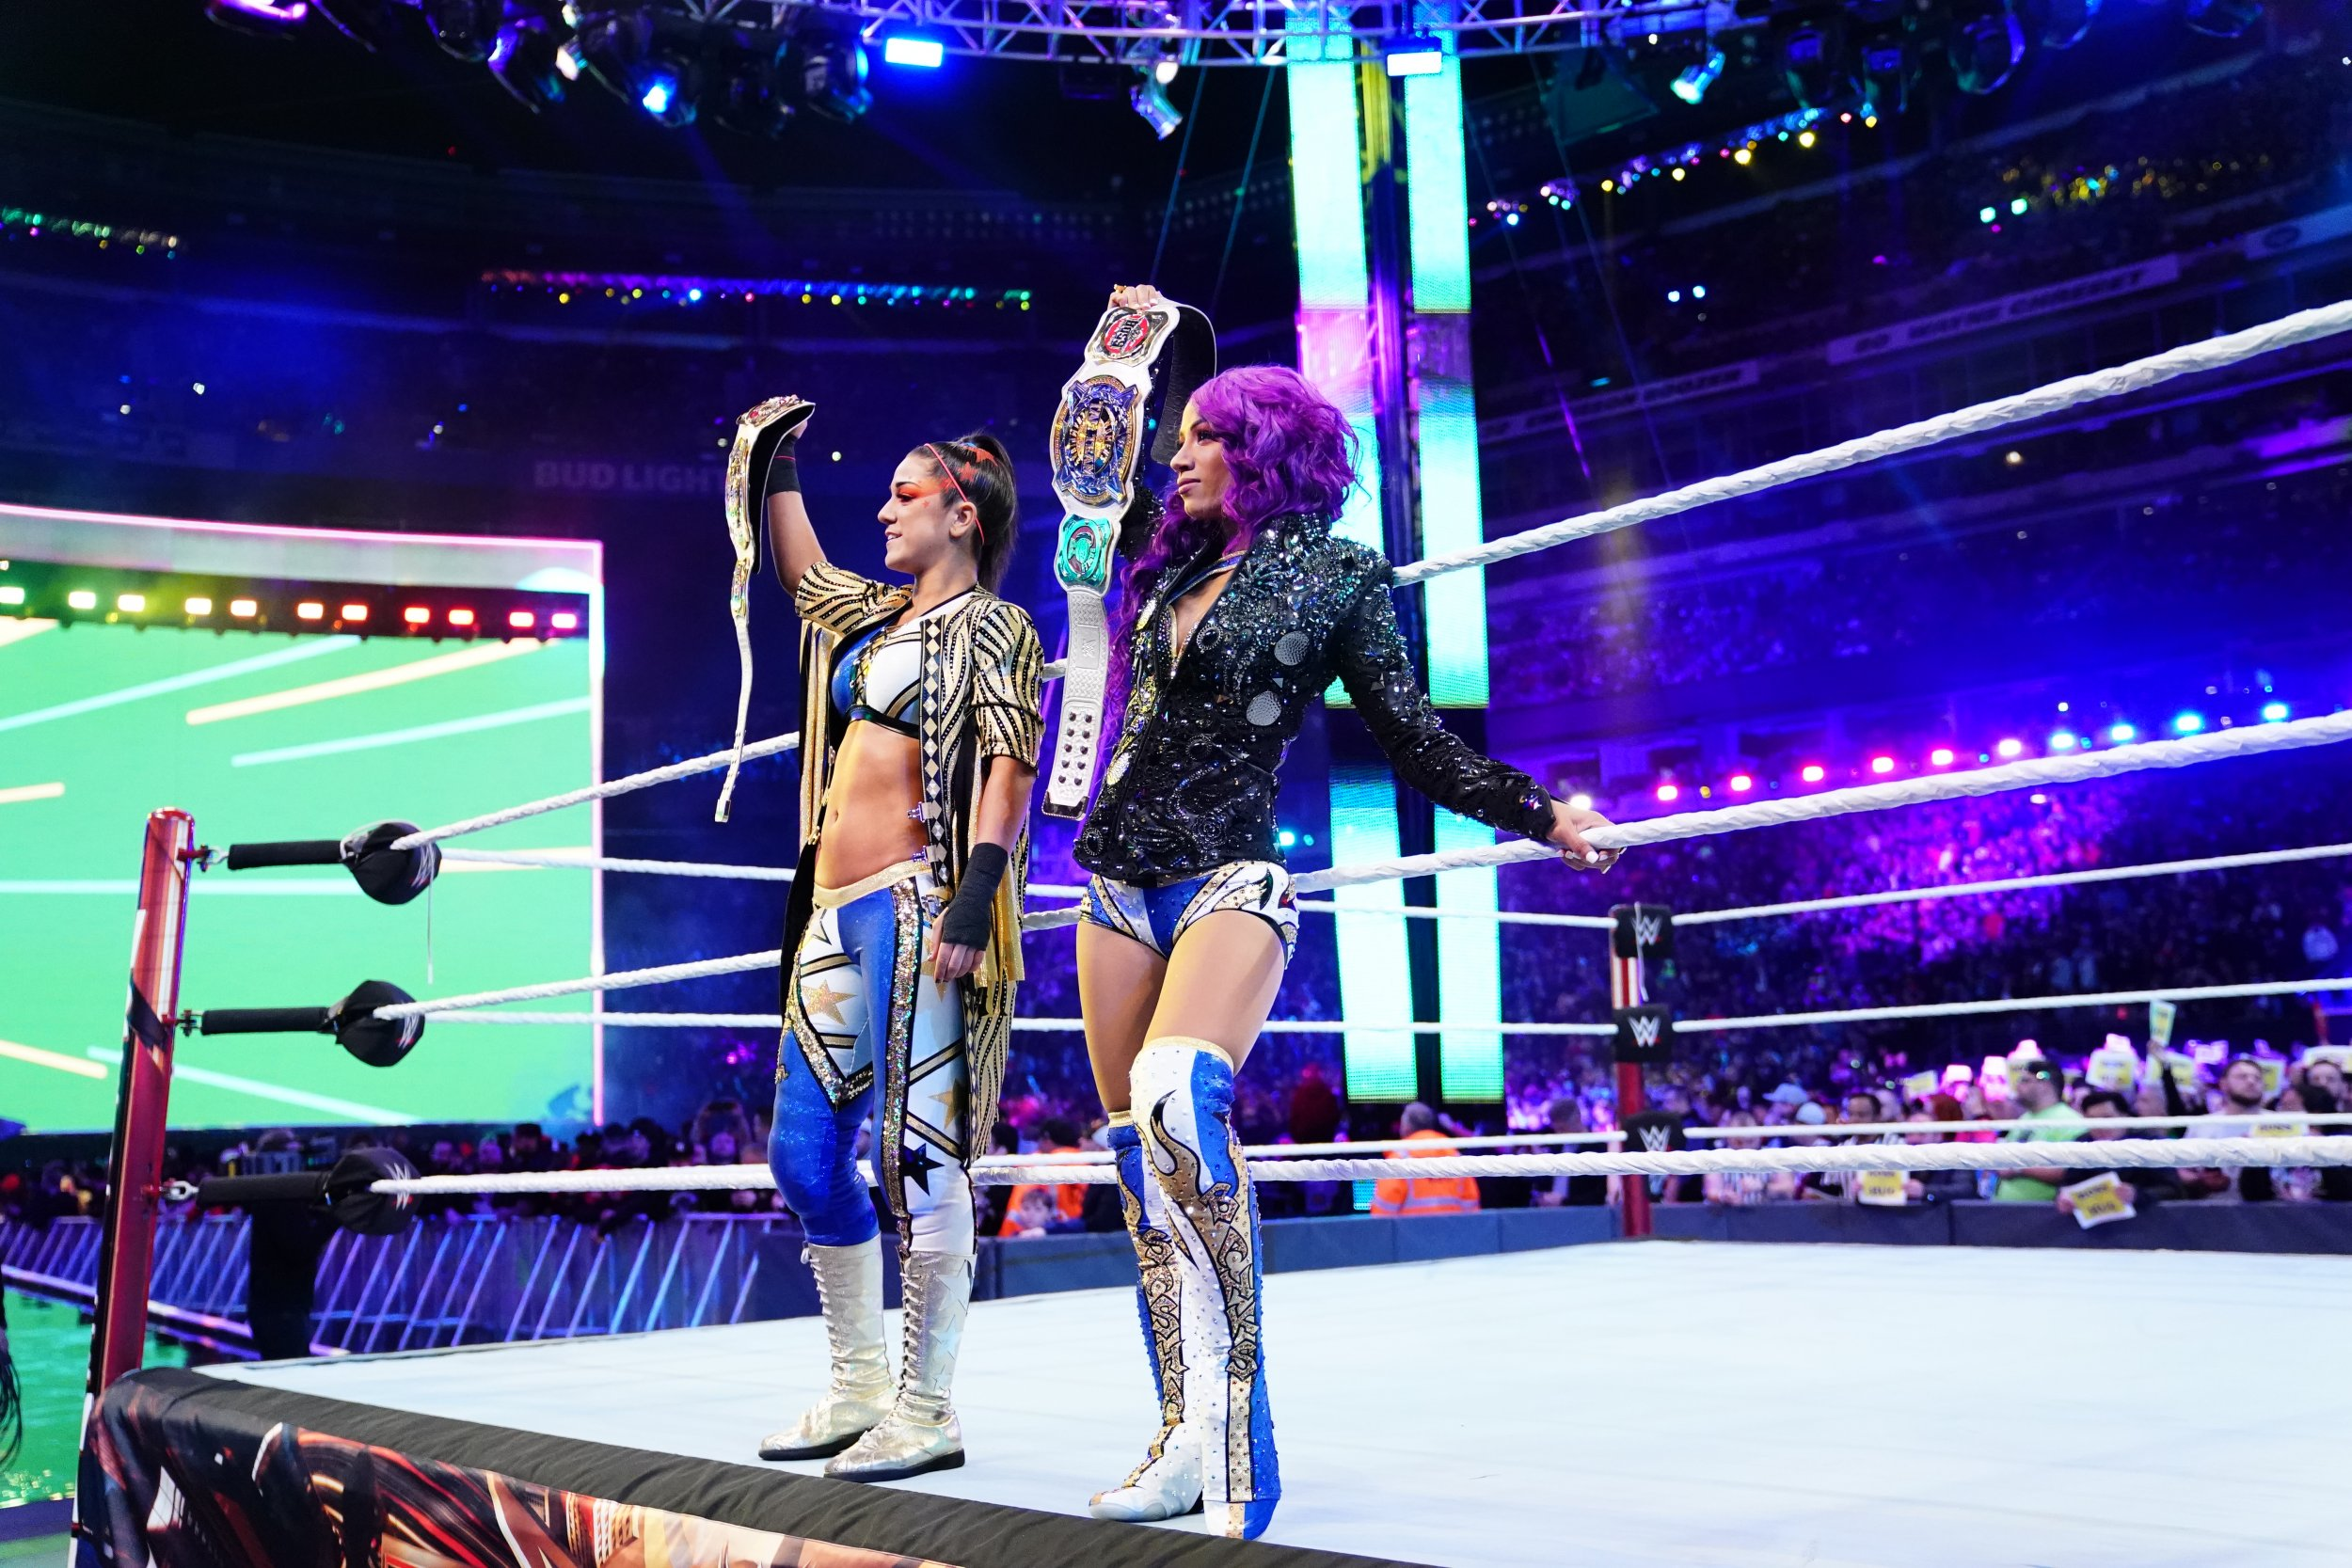 Update on Sasha Banks, Bayley also unhappy with WWE